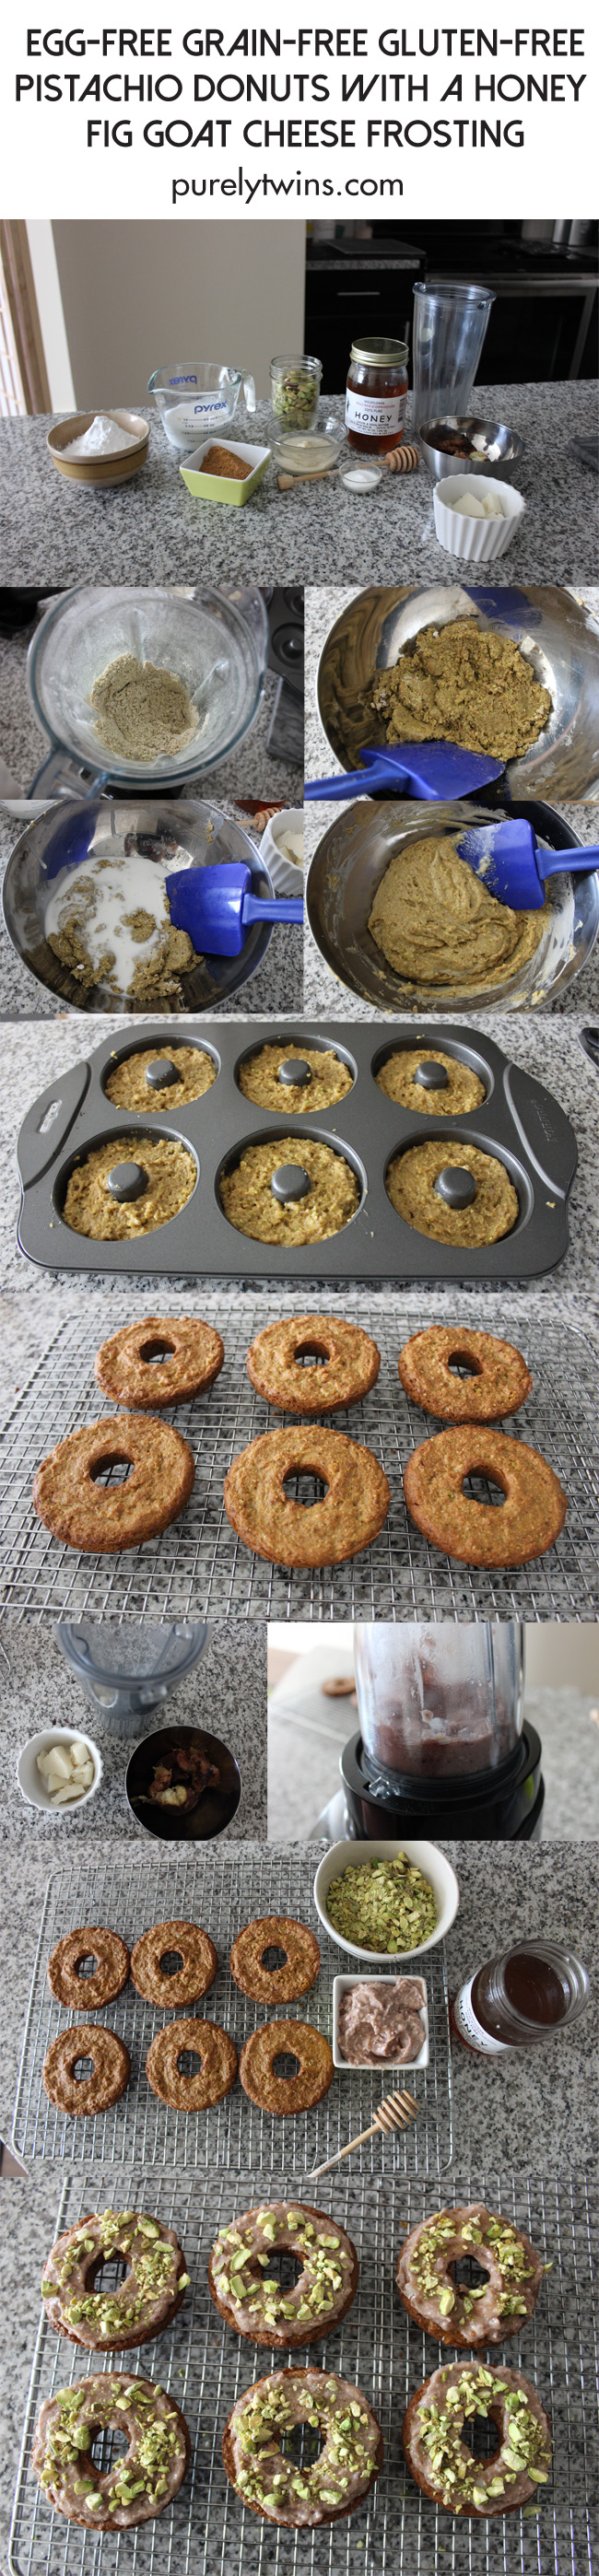 how to make egg-free grain-free fig goat cheese pistachio donuts